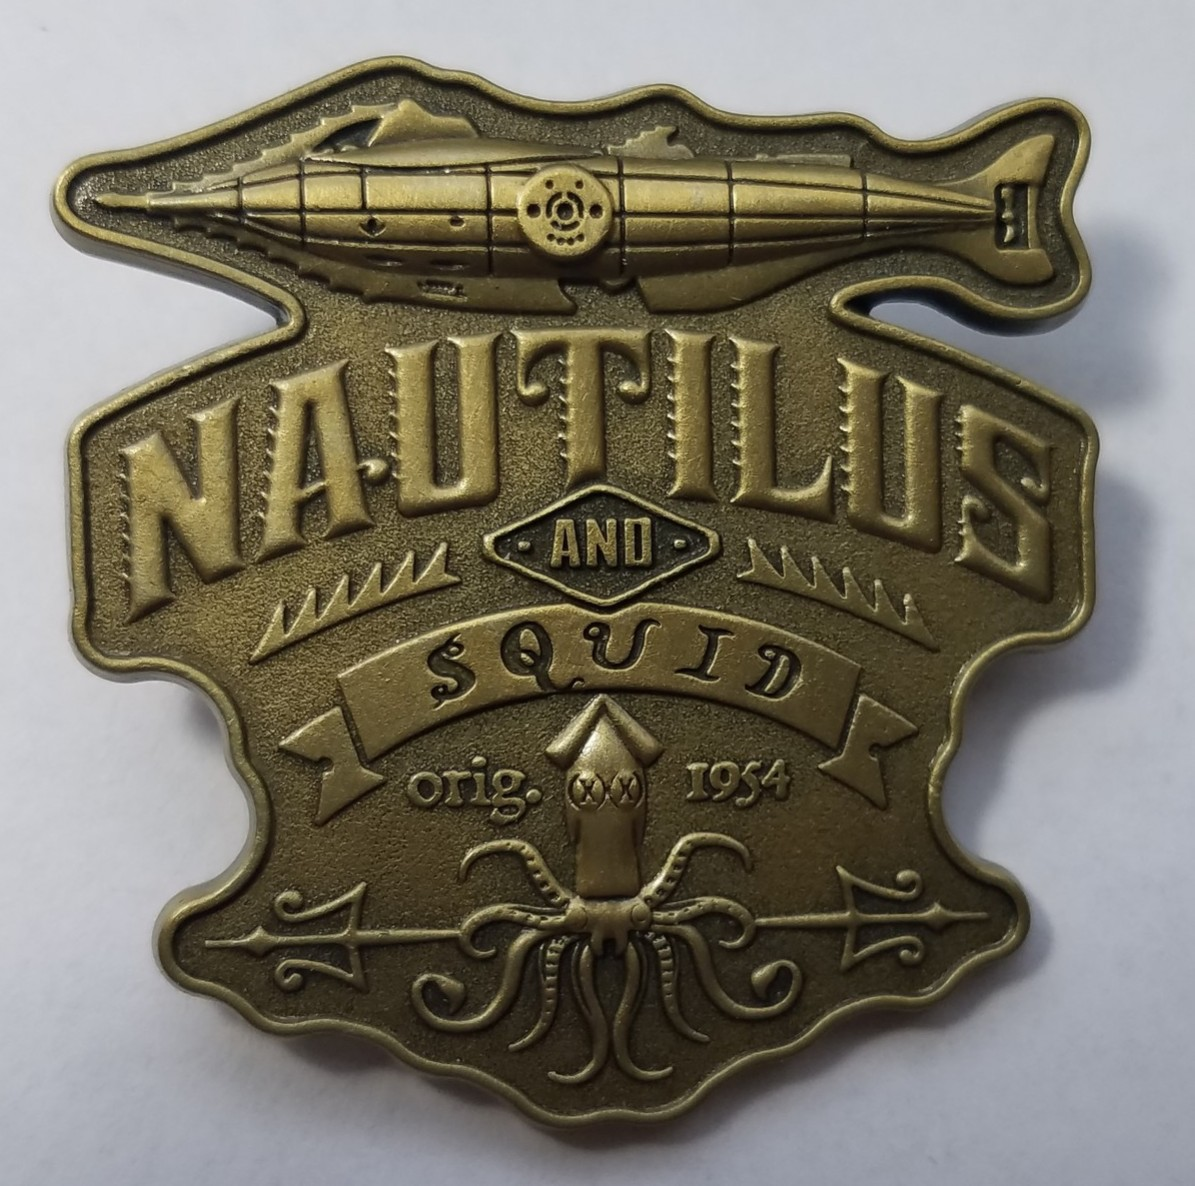 Nautilus and Squid